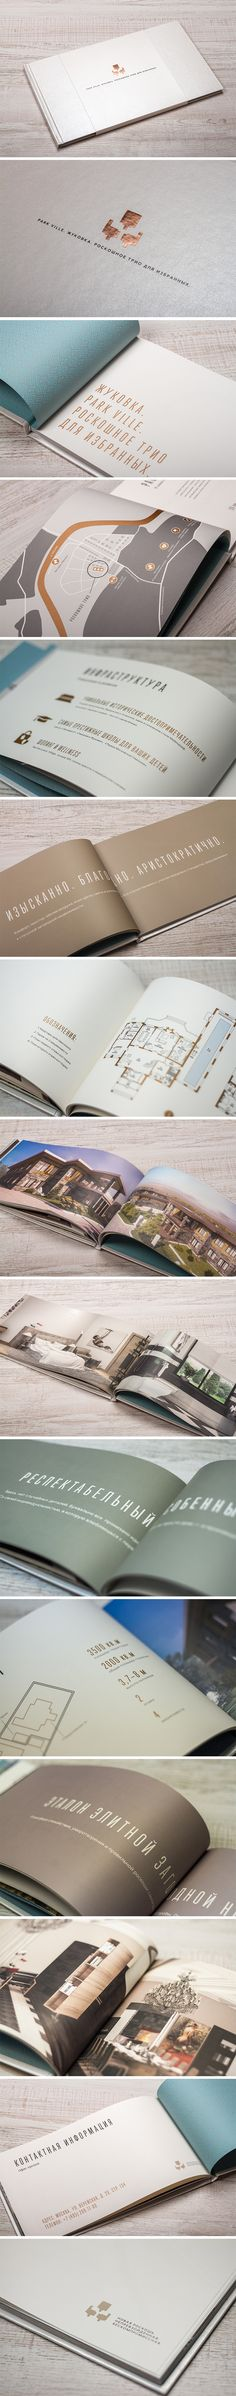 "Premium booklet with real estate offerings of the ""Park Ville"" housing development. #brochure #EstateBrochures #RealEstateAgents"